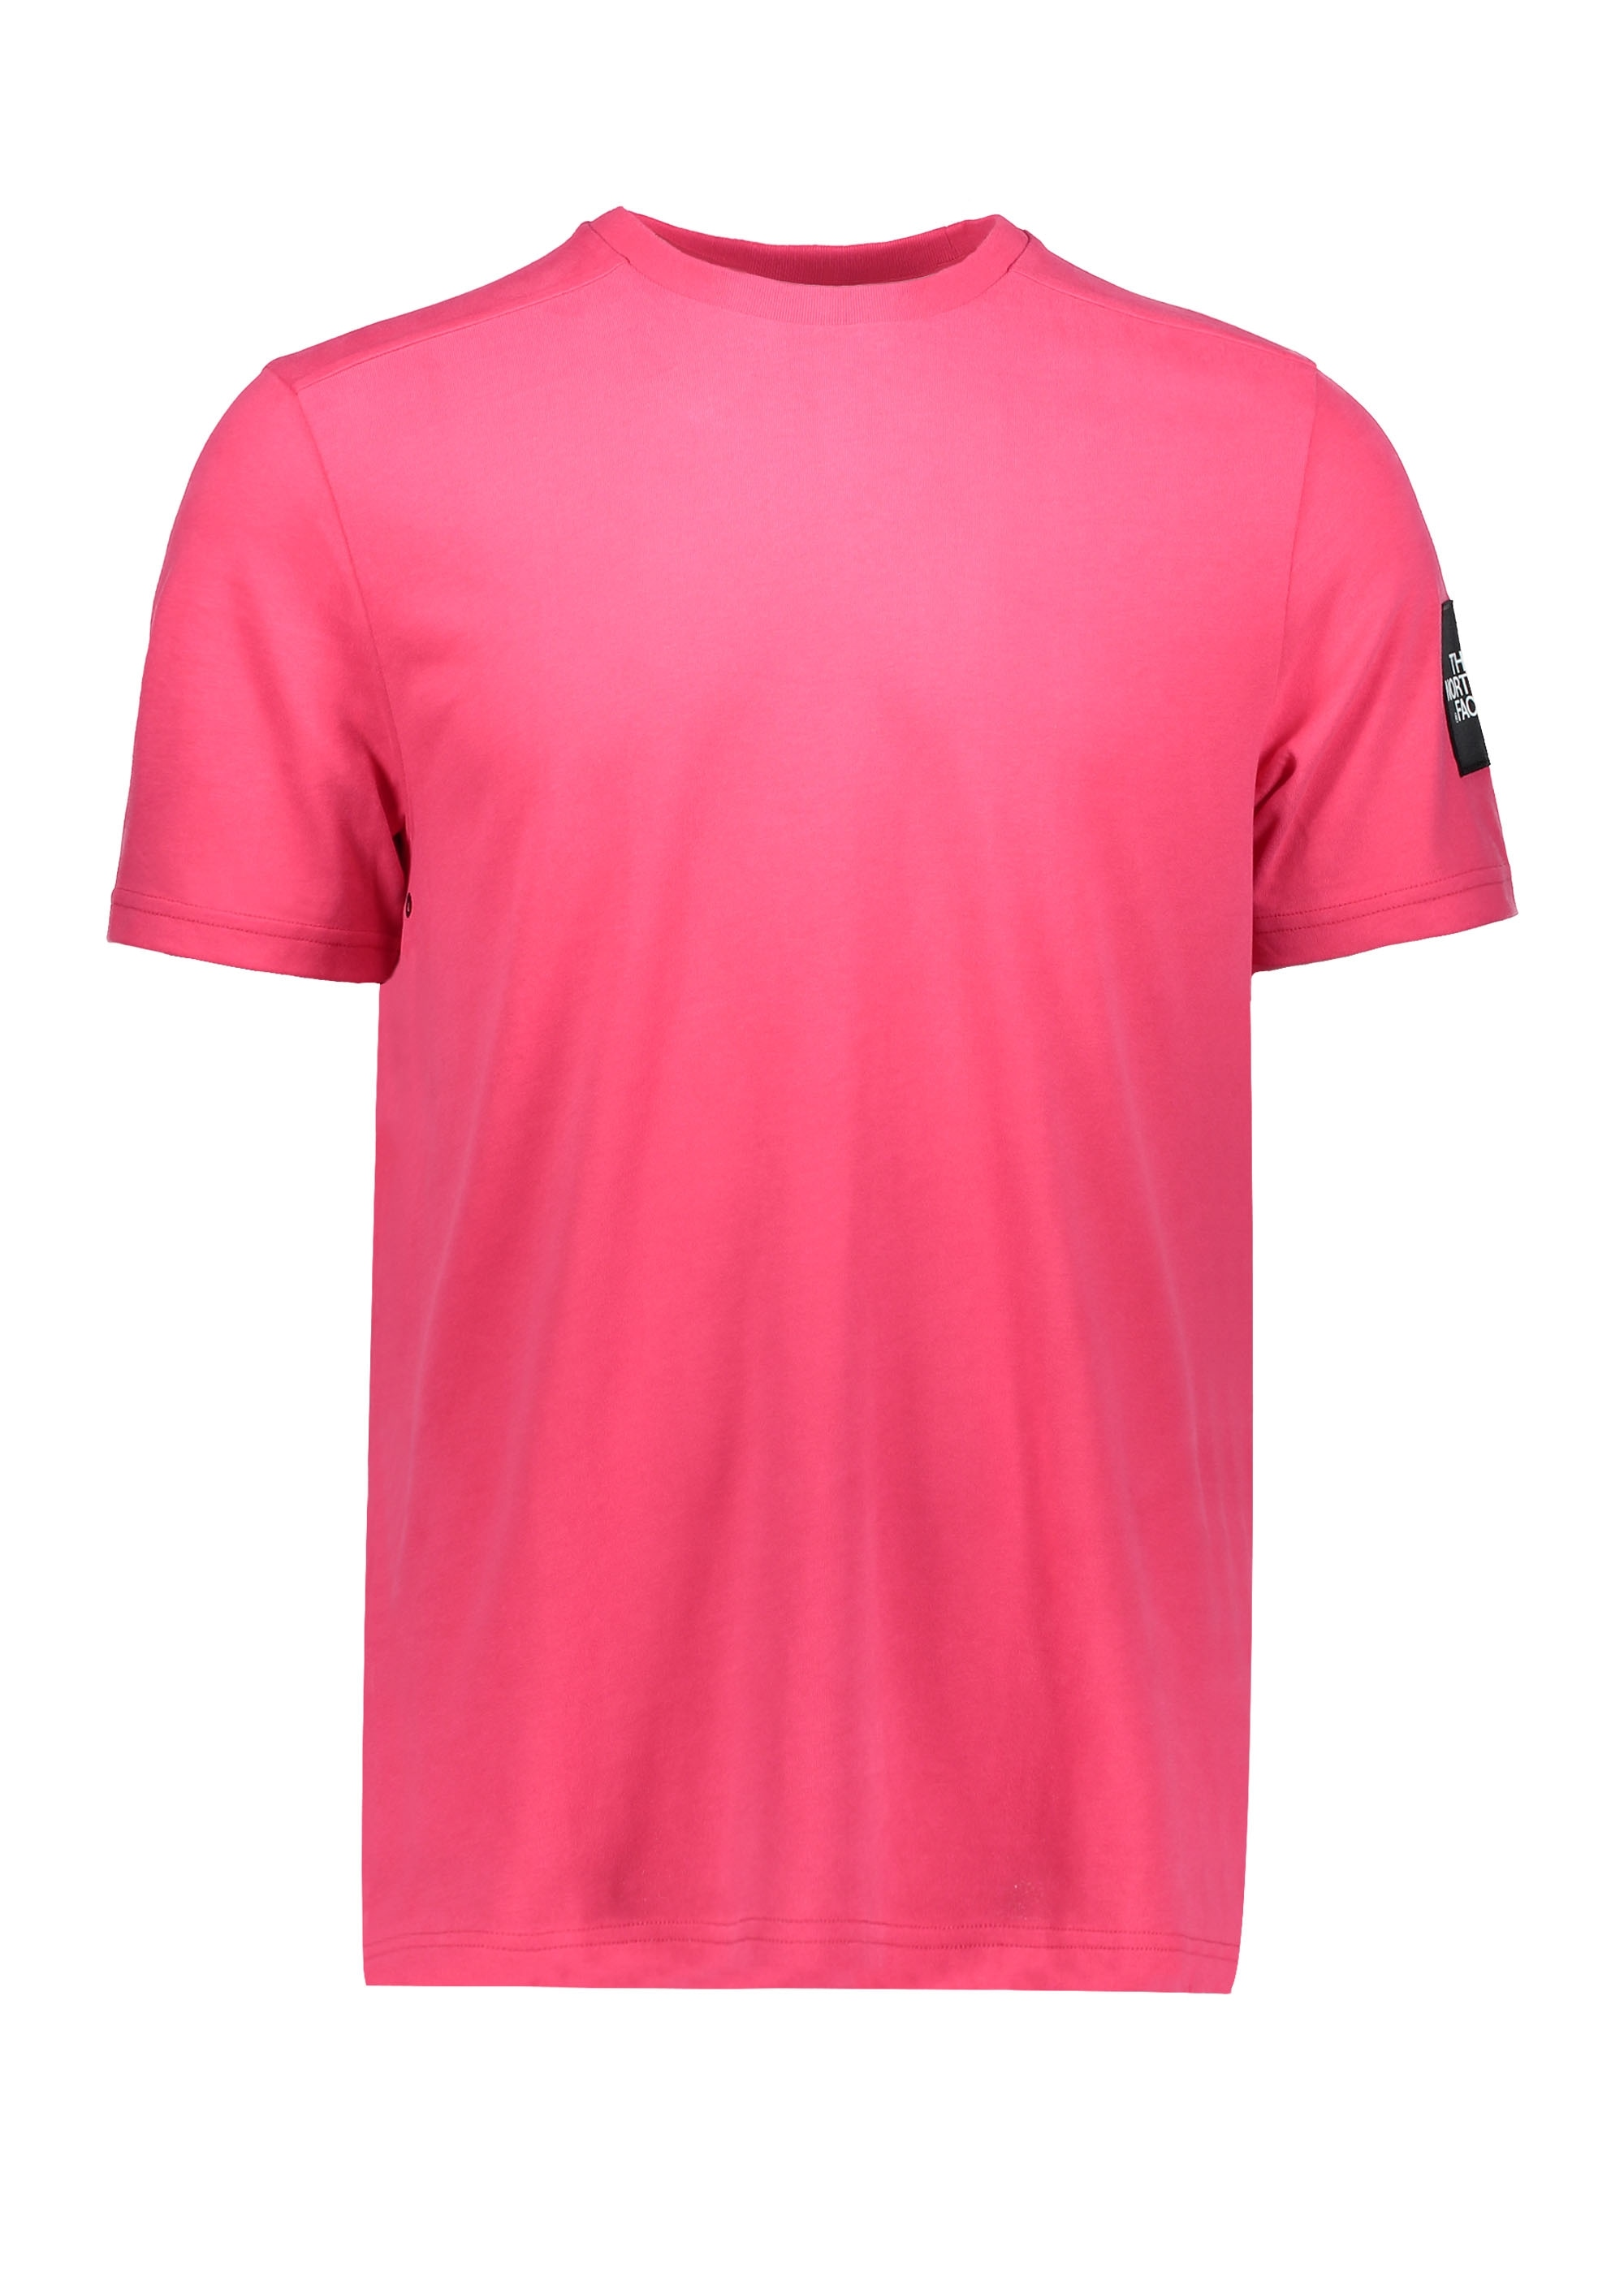 b187e7968d13 The North Face SS Fine 2 Tee - Raspberry Red - T-shirts from Triads UK